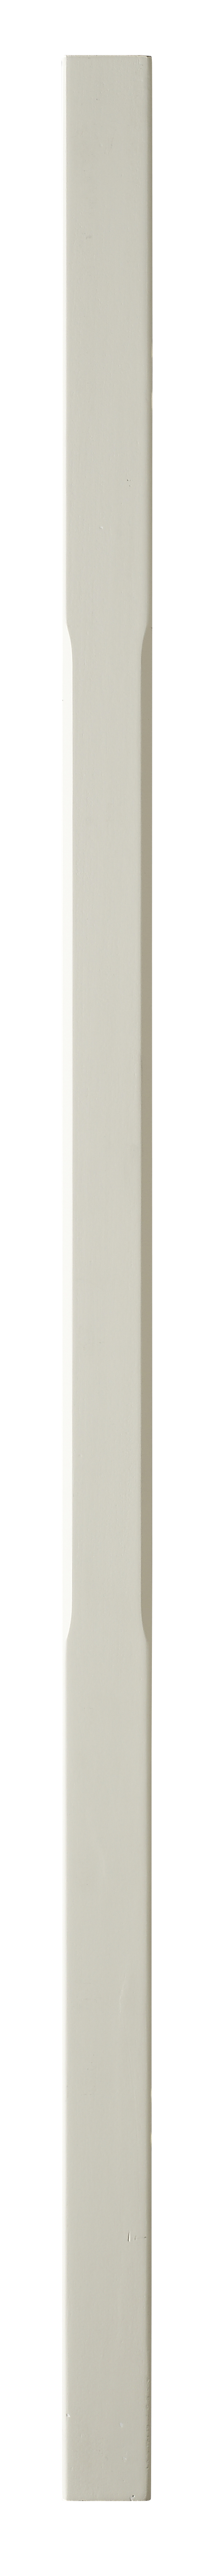 1 White Stop Chamfer Baluster 1100 41